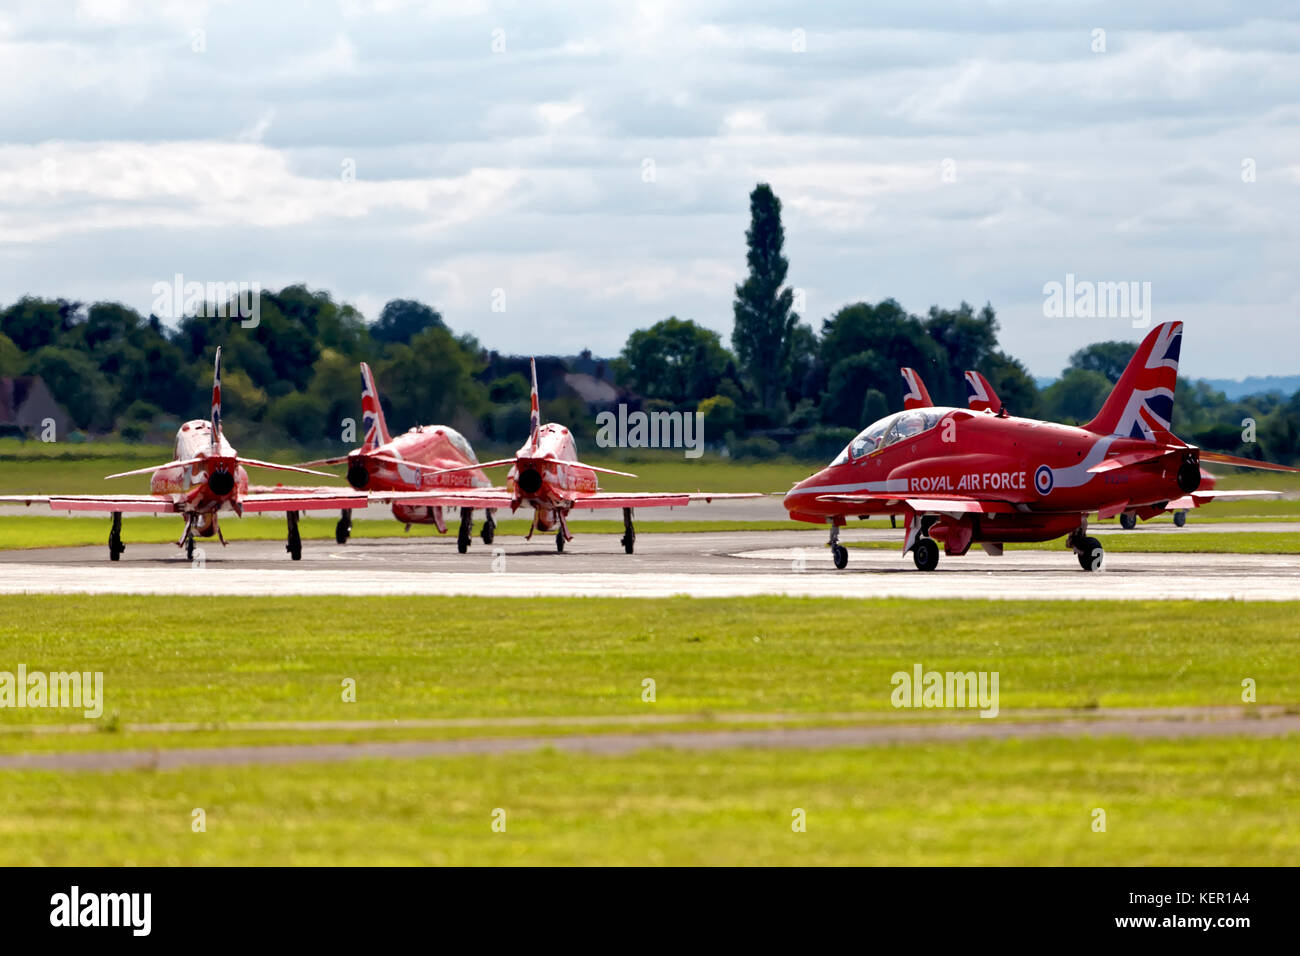 The Royal Air Force Aerobatic Team The Red Arrows at the Royal Naval Air Station Yeovilton, International Air Day - Stock Image